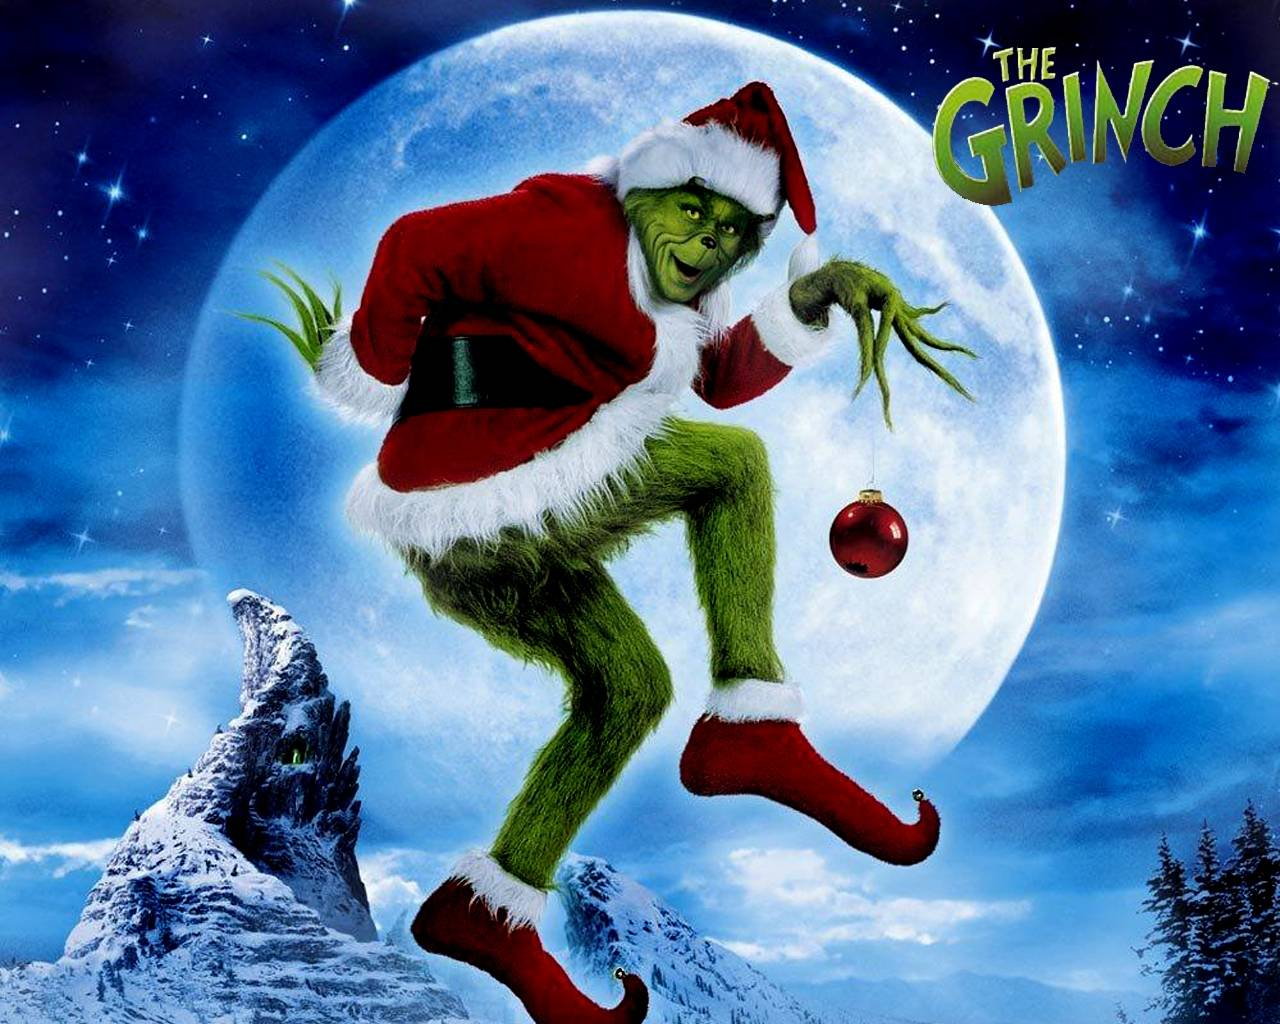 Best 60 How the Grinch Stole Christmas Wallpaper on HipWallpaper 1280x1024